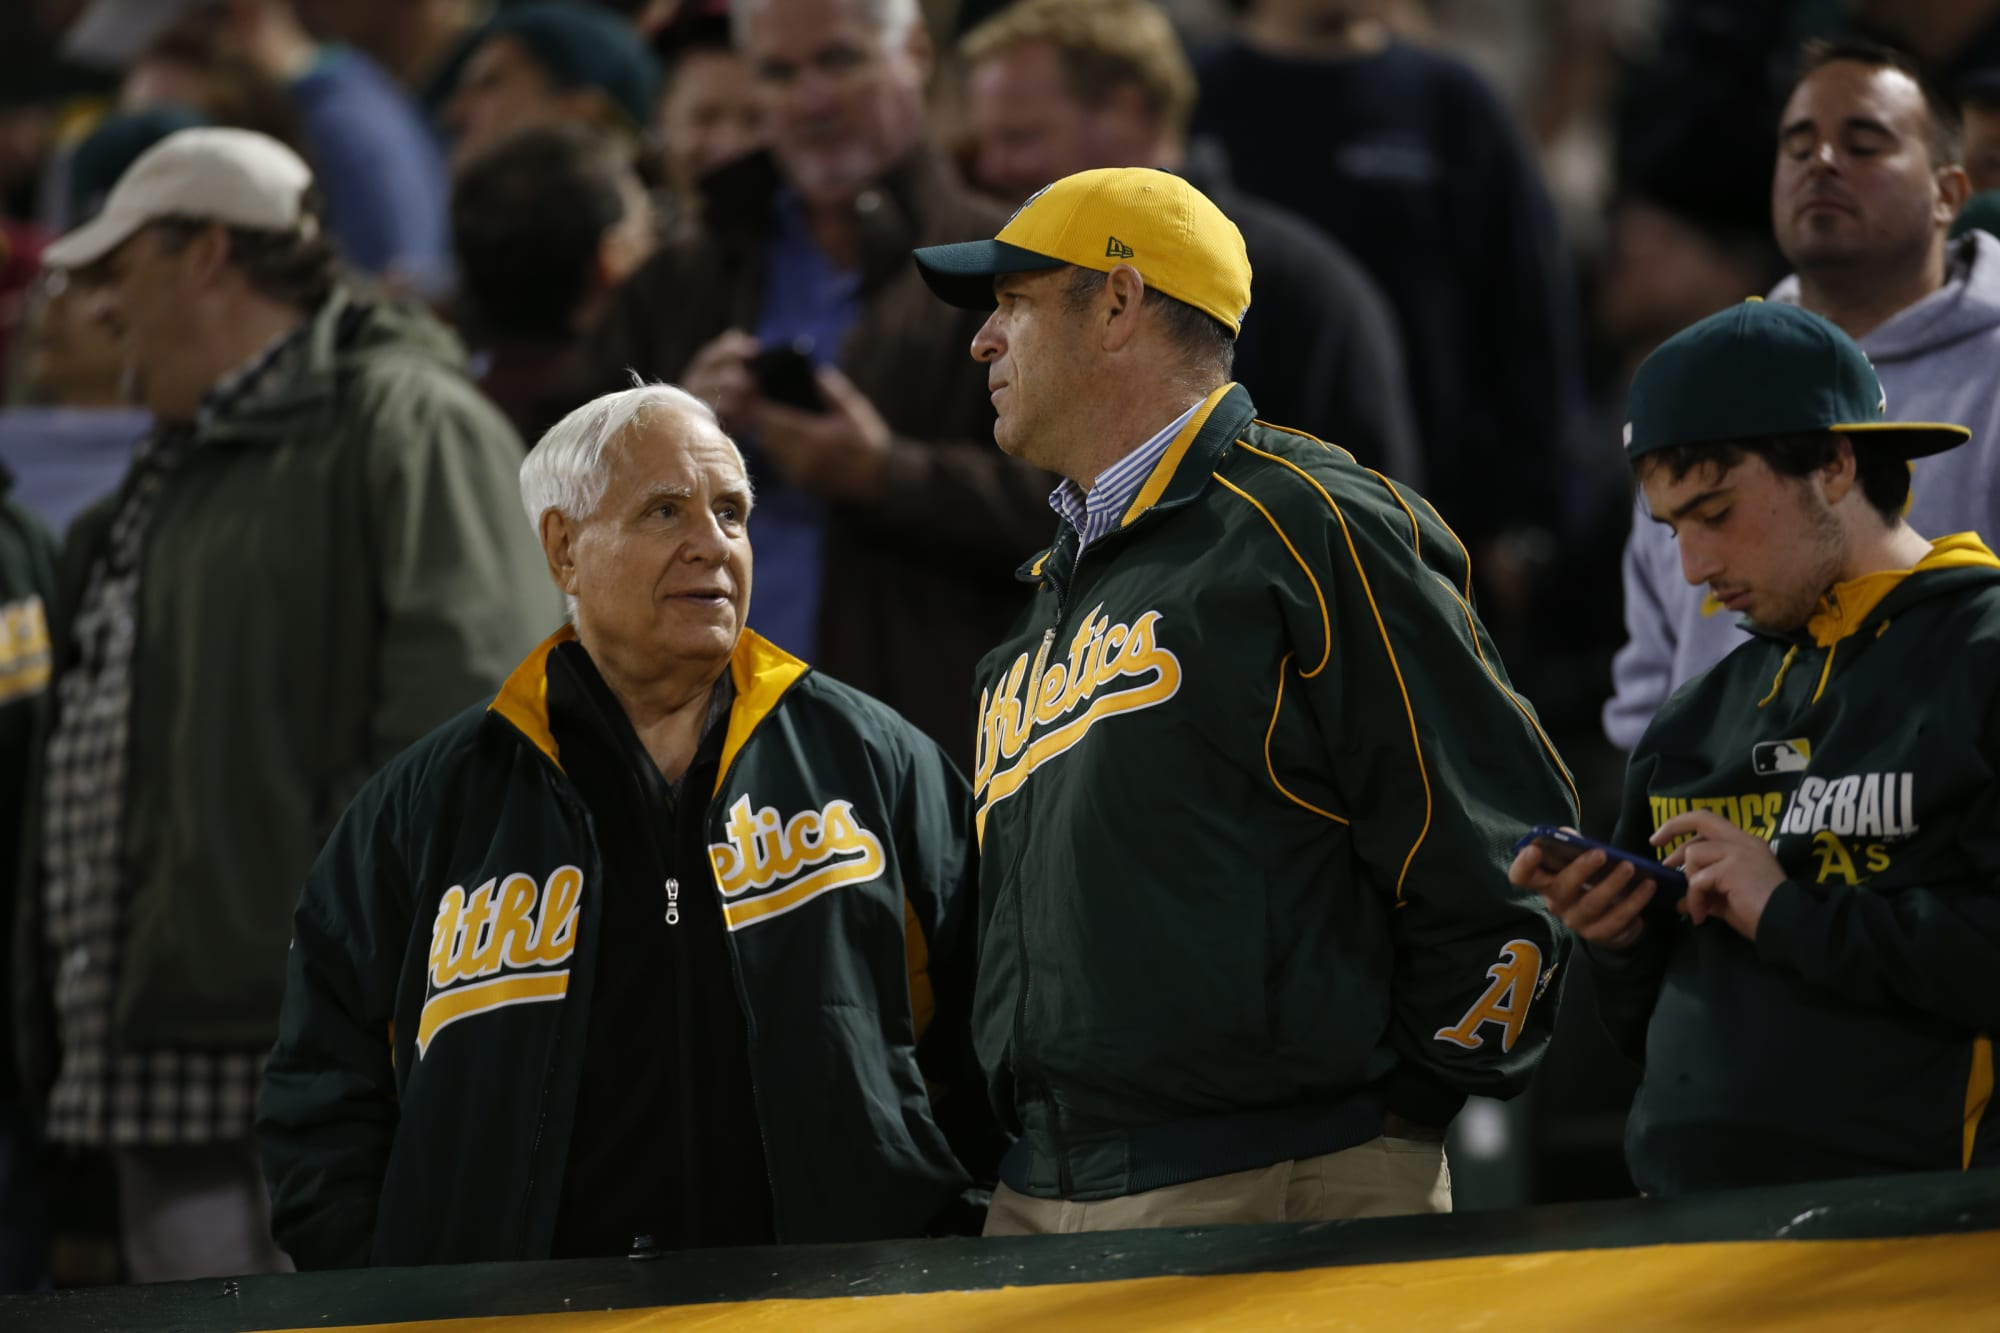 Oakland A's finally see the light and will pay minor leaguers